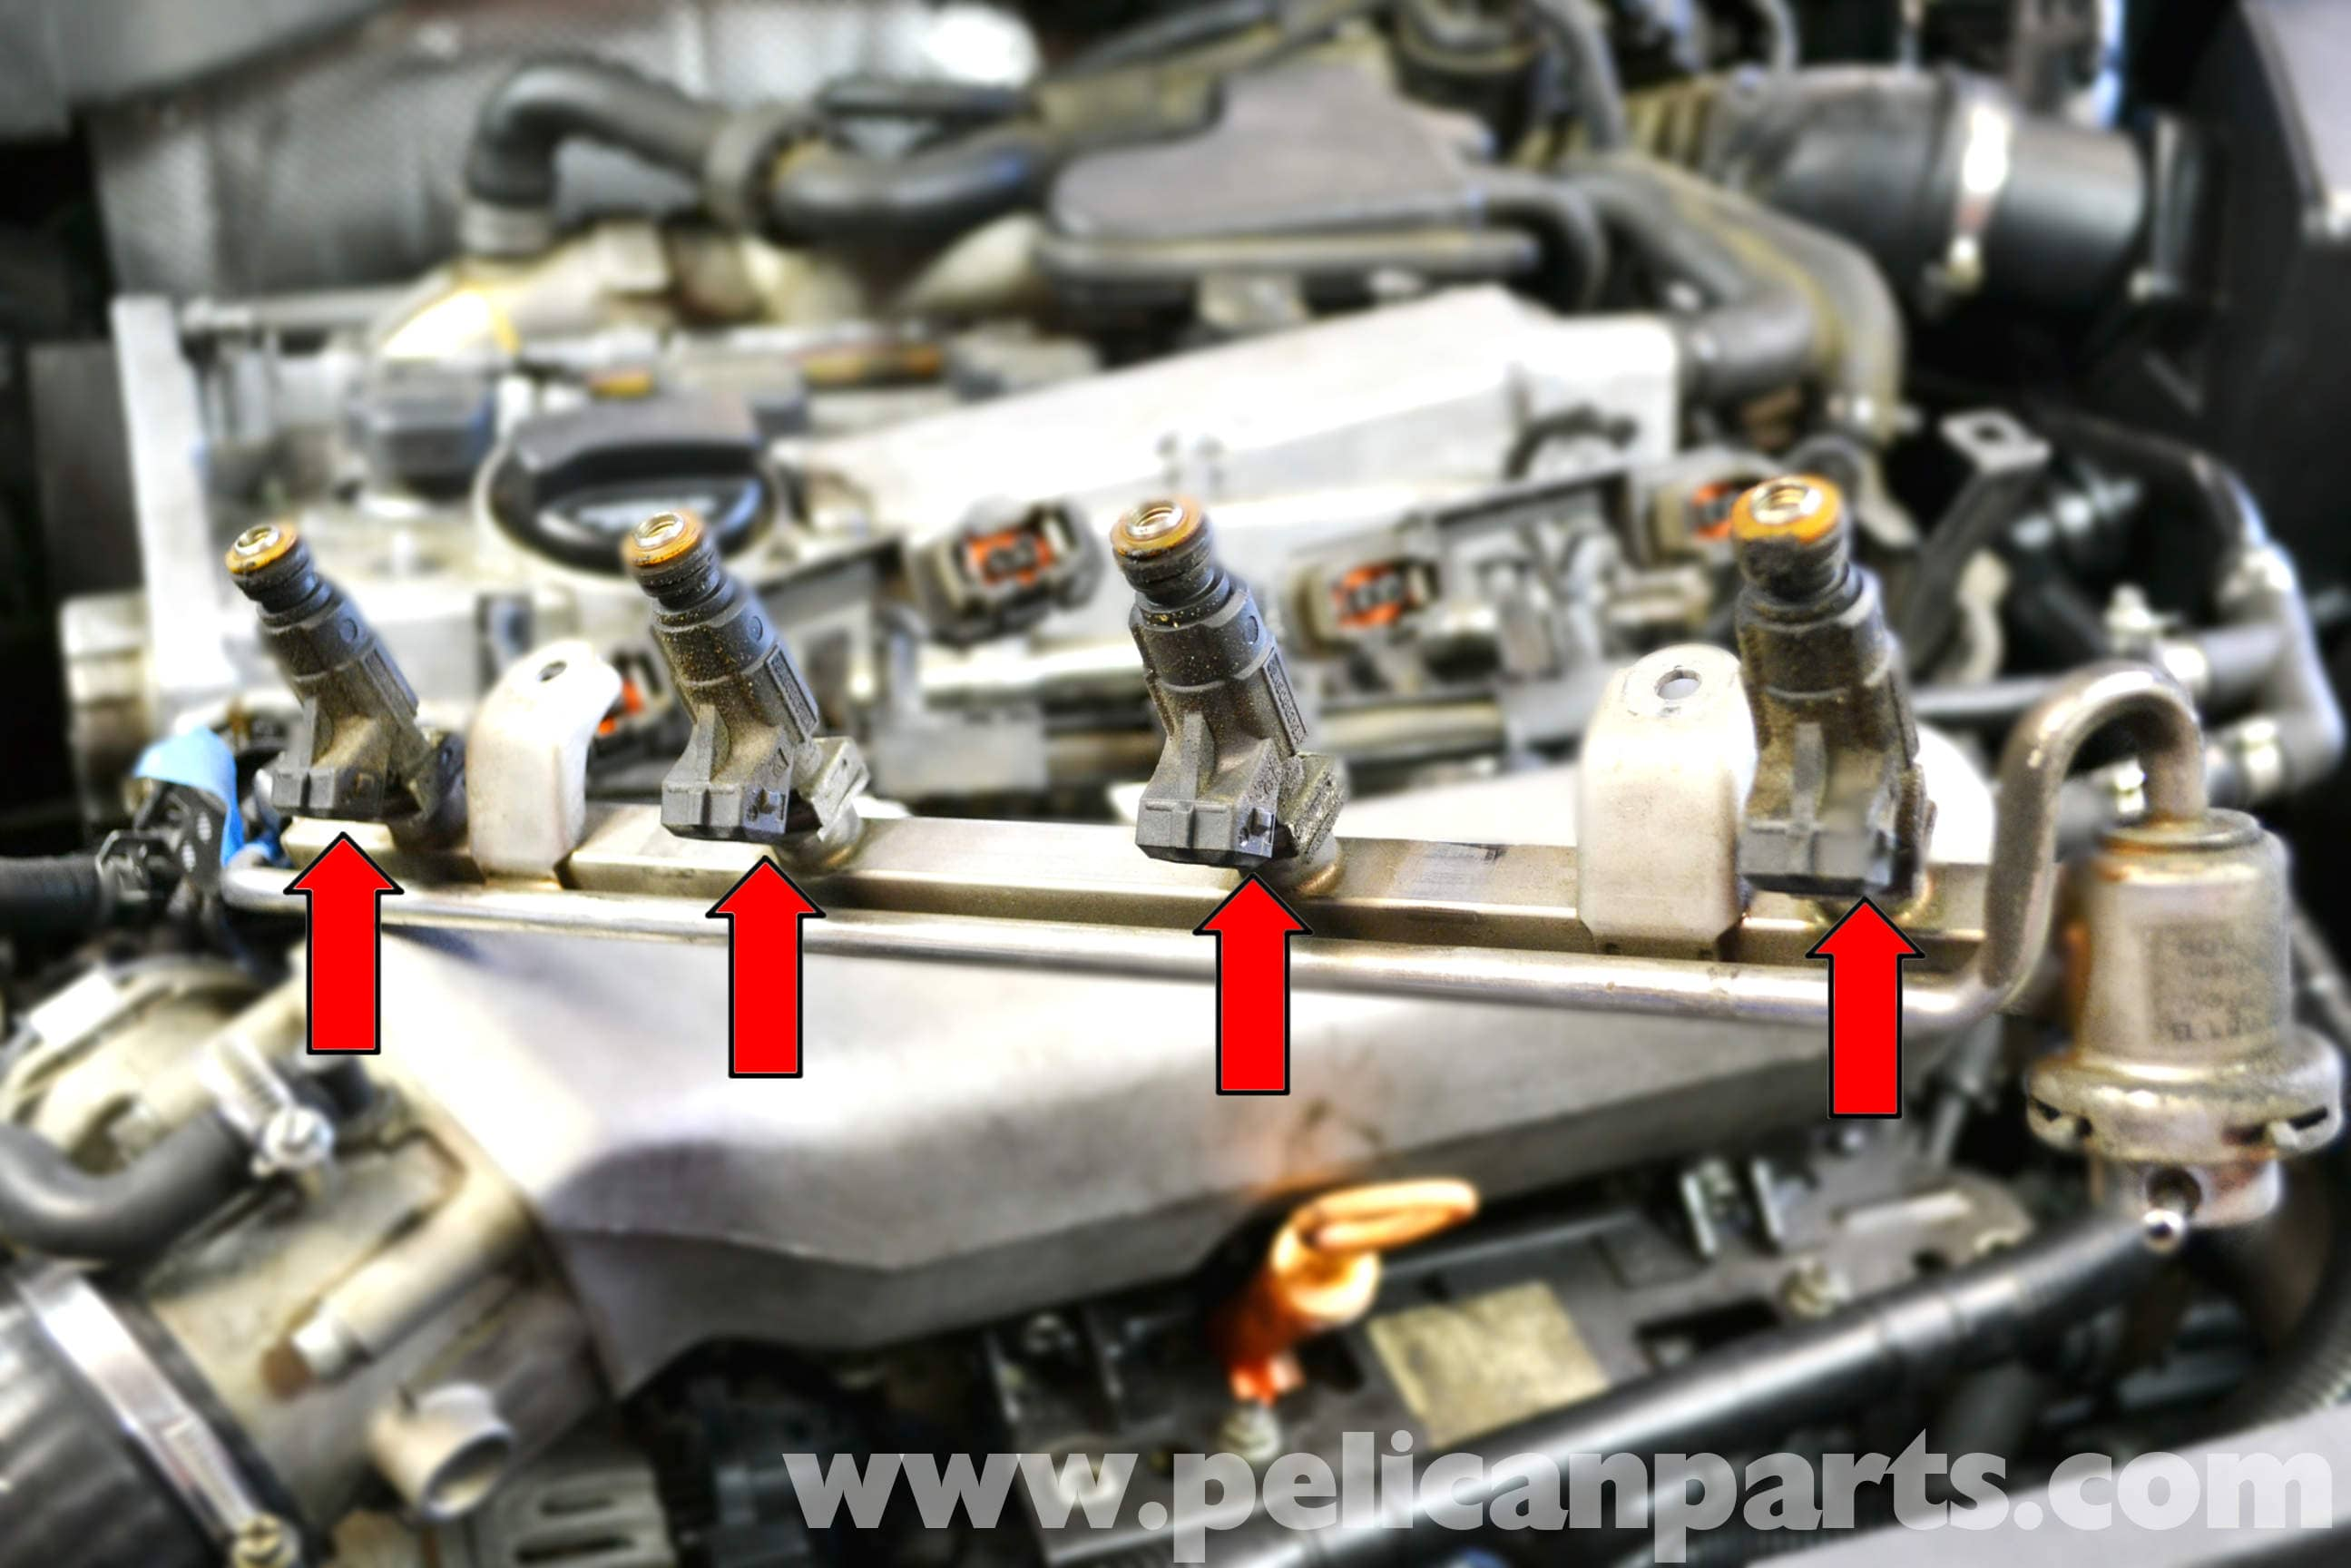 Volkswagen Golf Gti Mk Iv Fuel Injector Replacement 1999 2005 Vw Wiring Diagram Large Image Extra